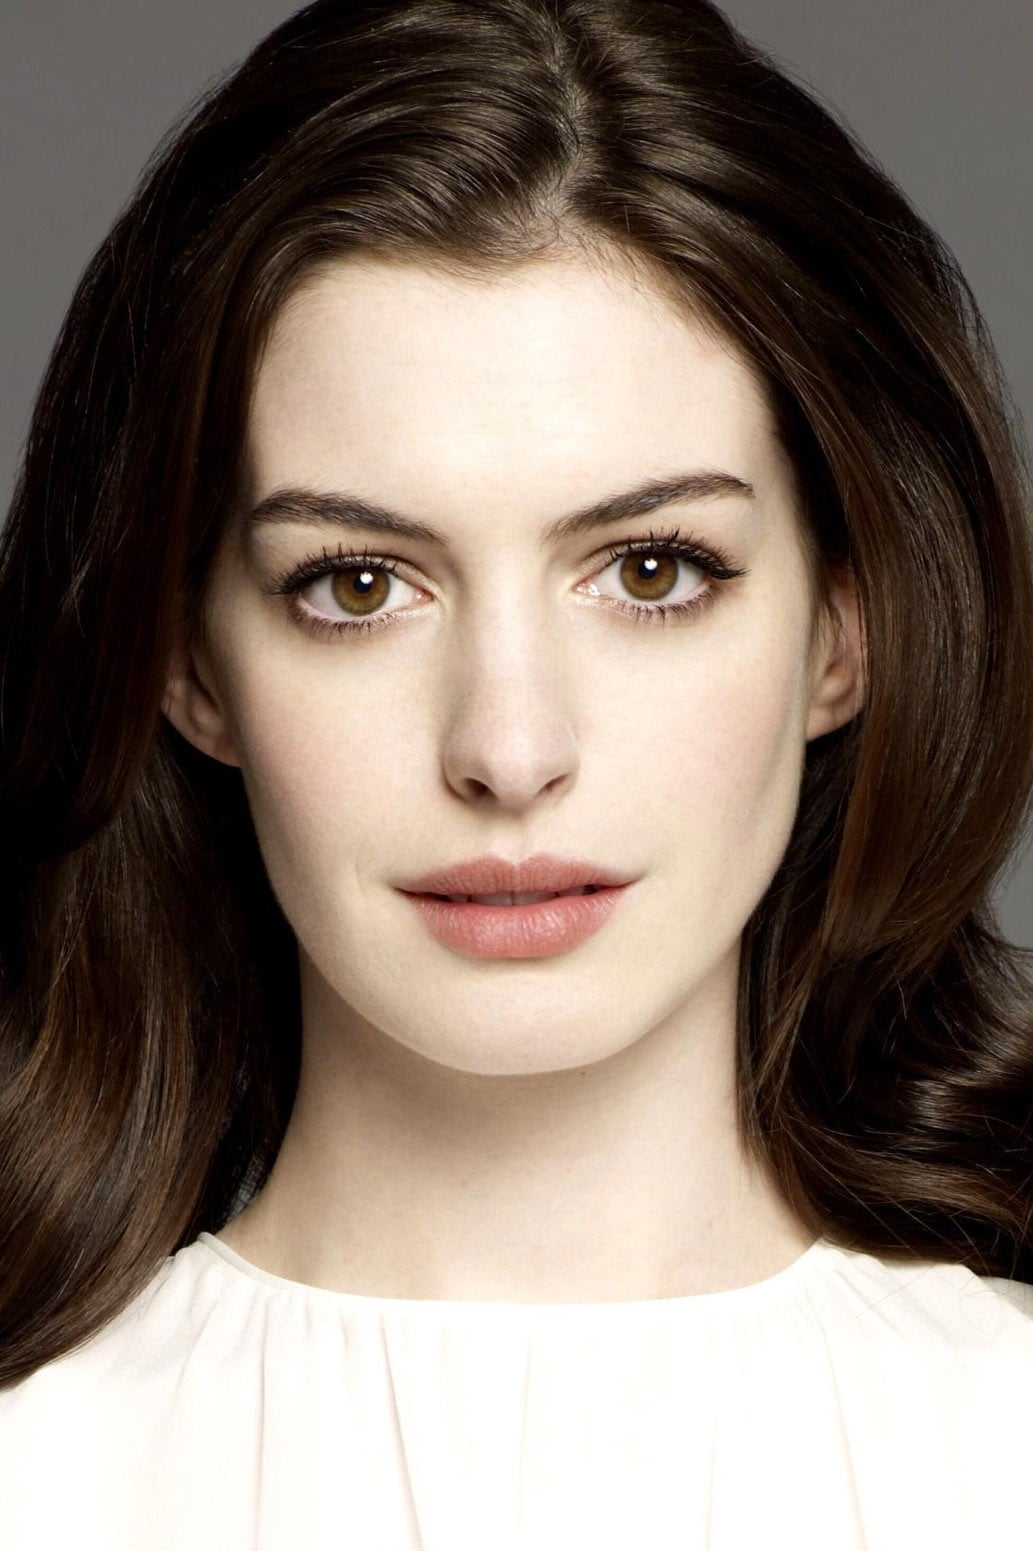 See streaming movies starring Anne Hathaway